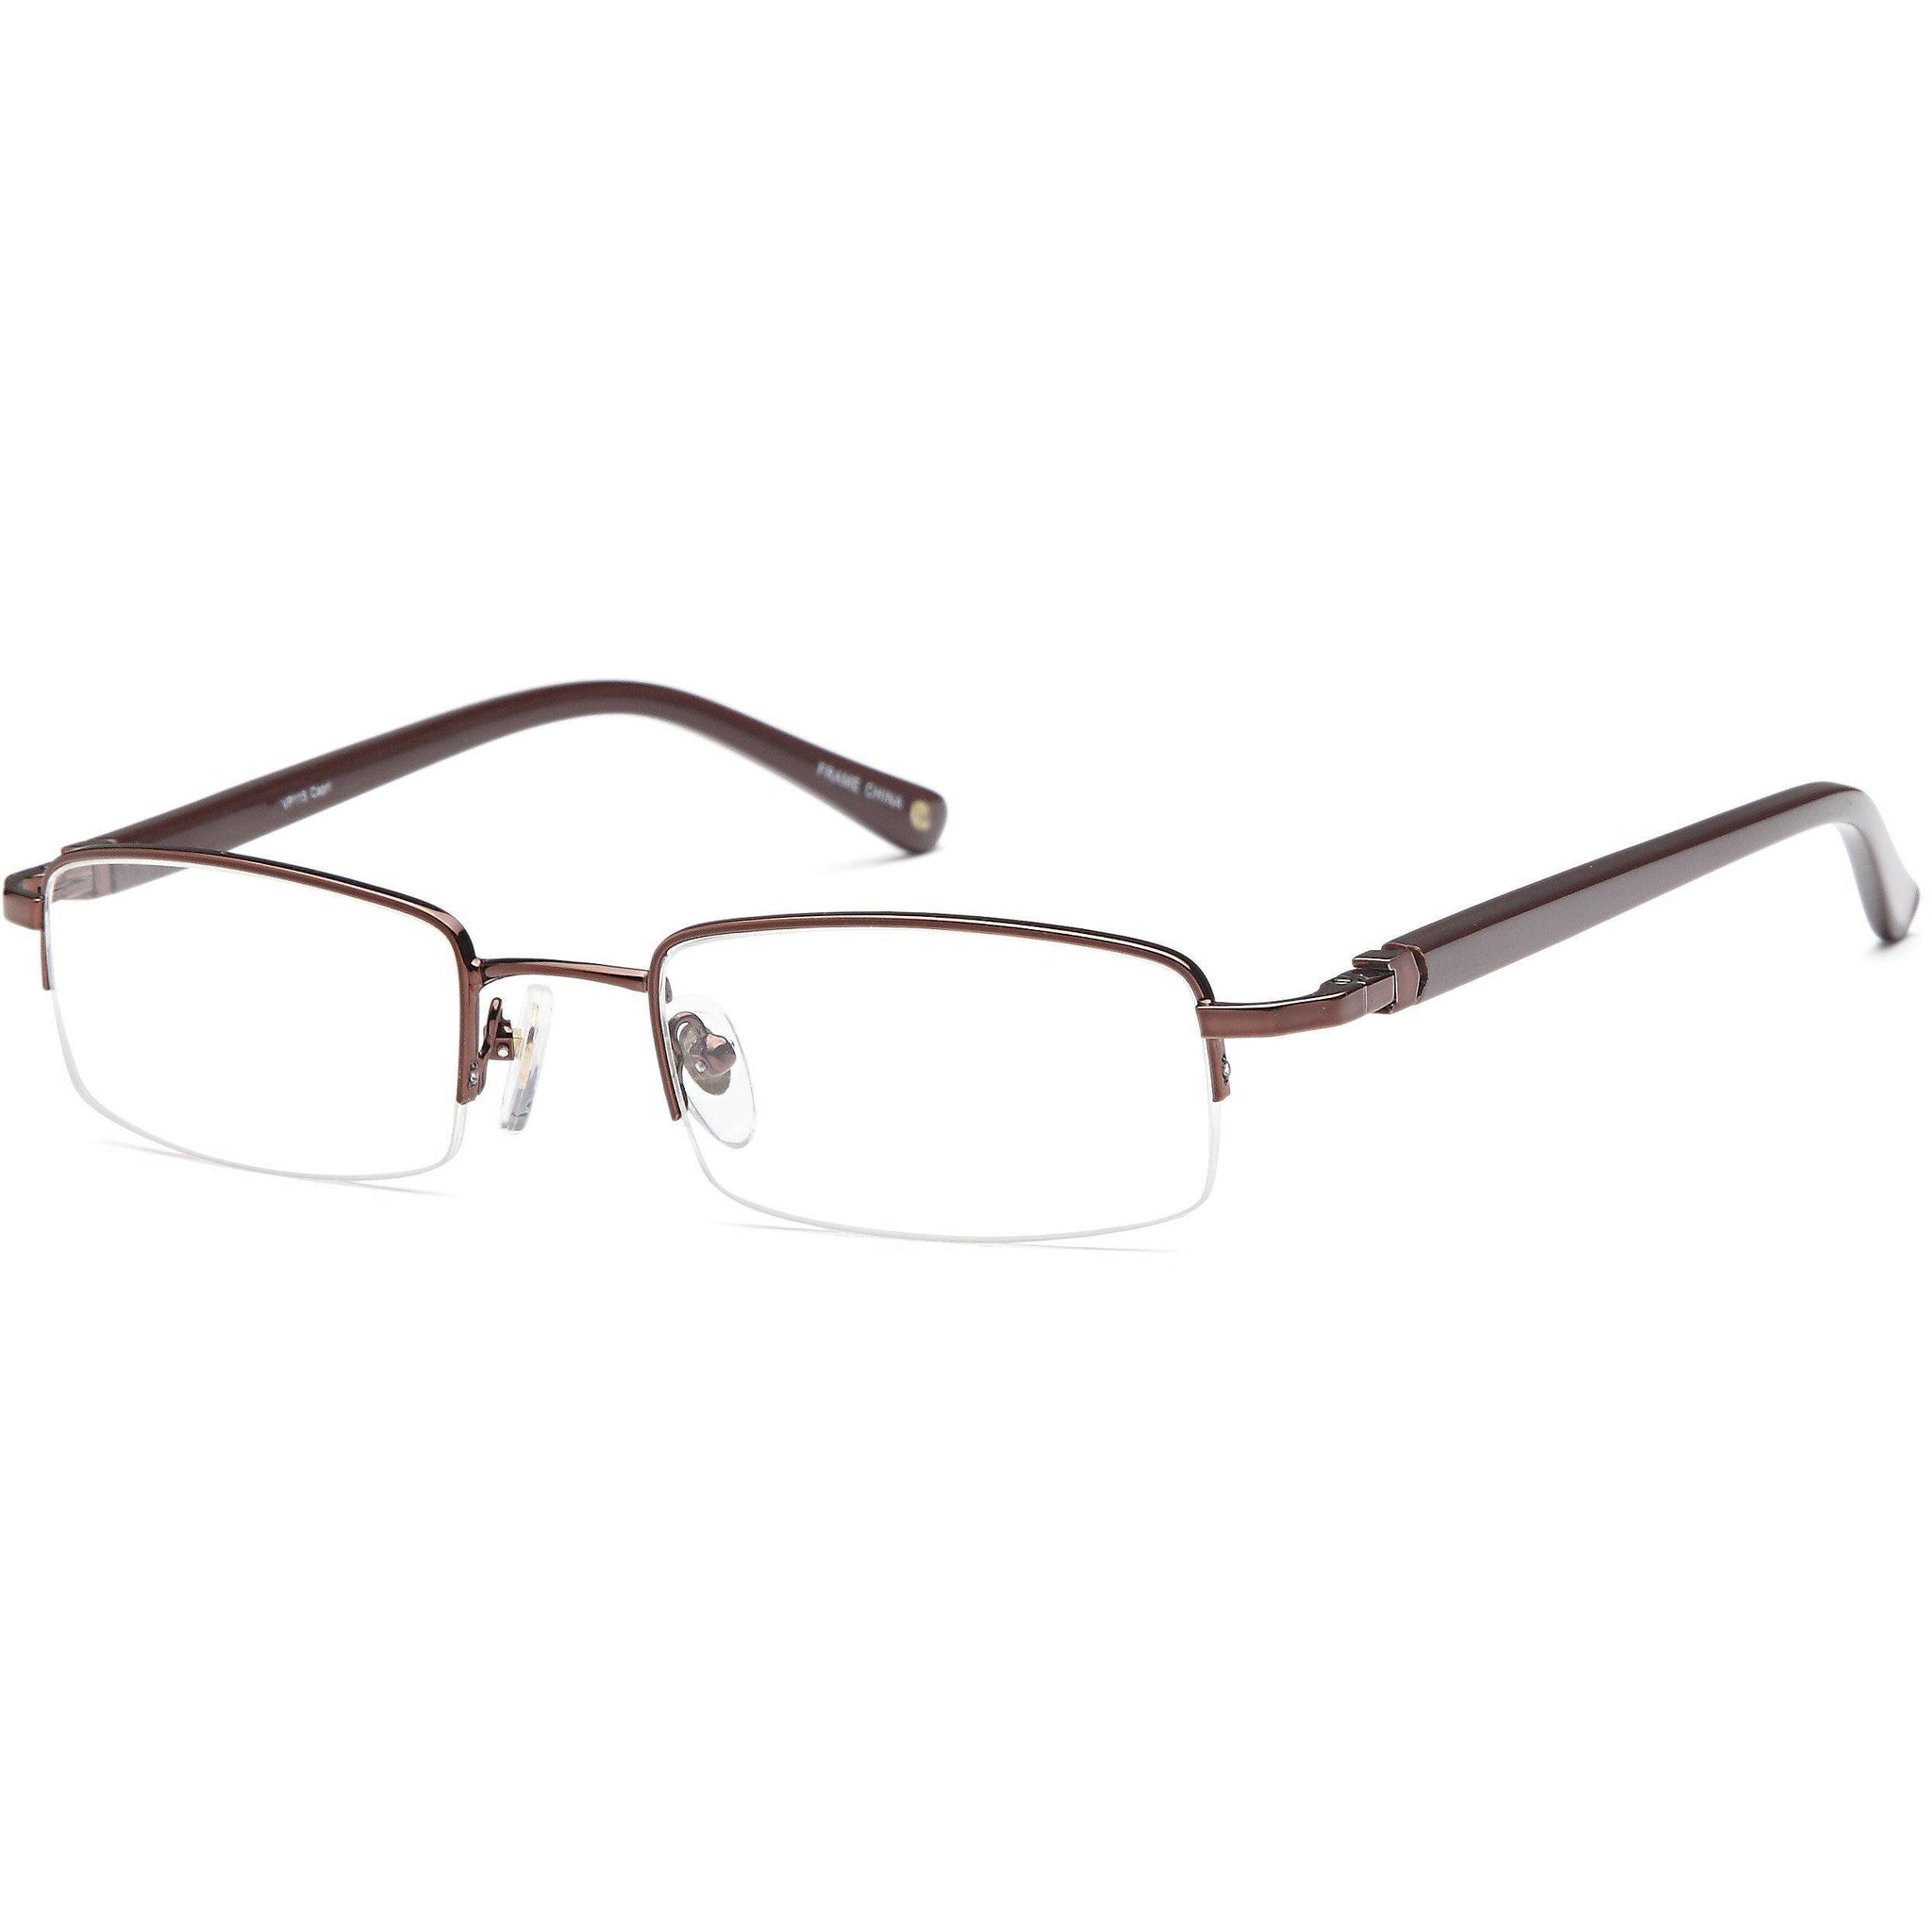 Classics Prescription Glasses VP 115 Frames